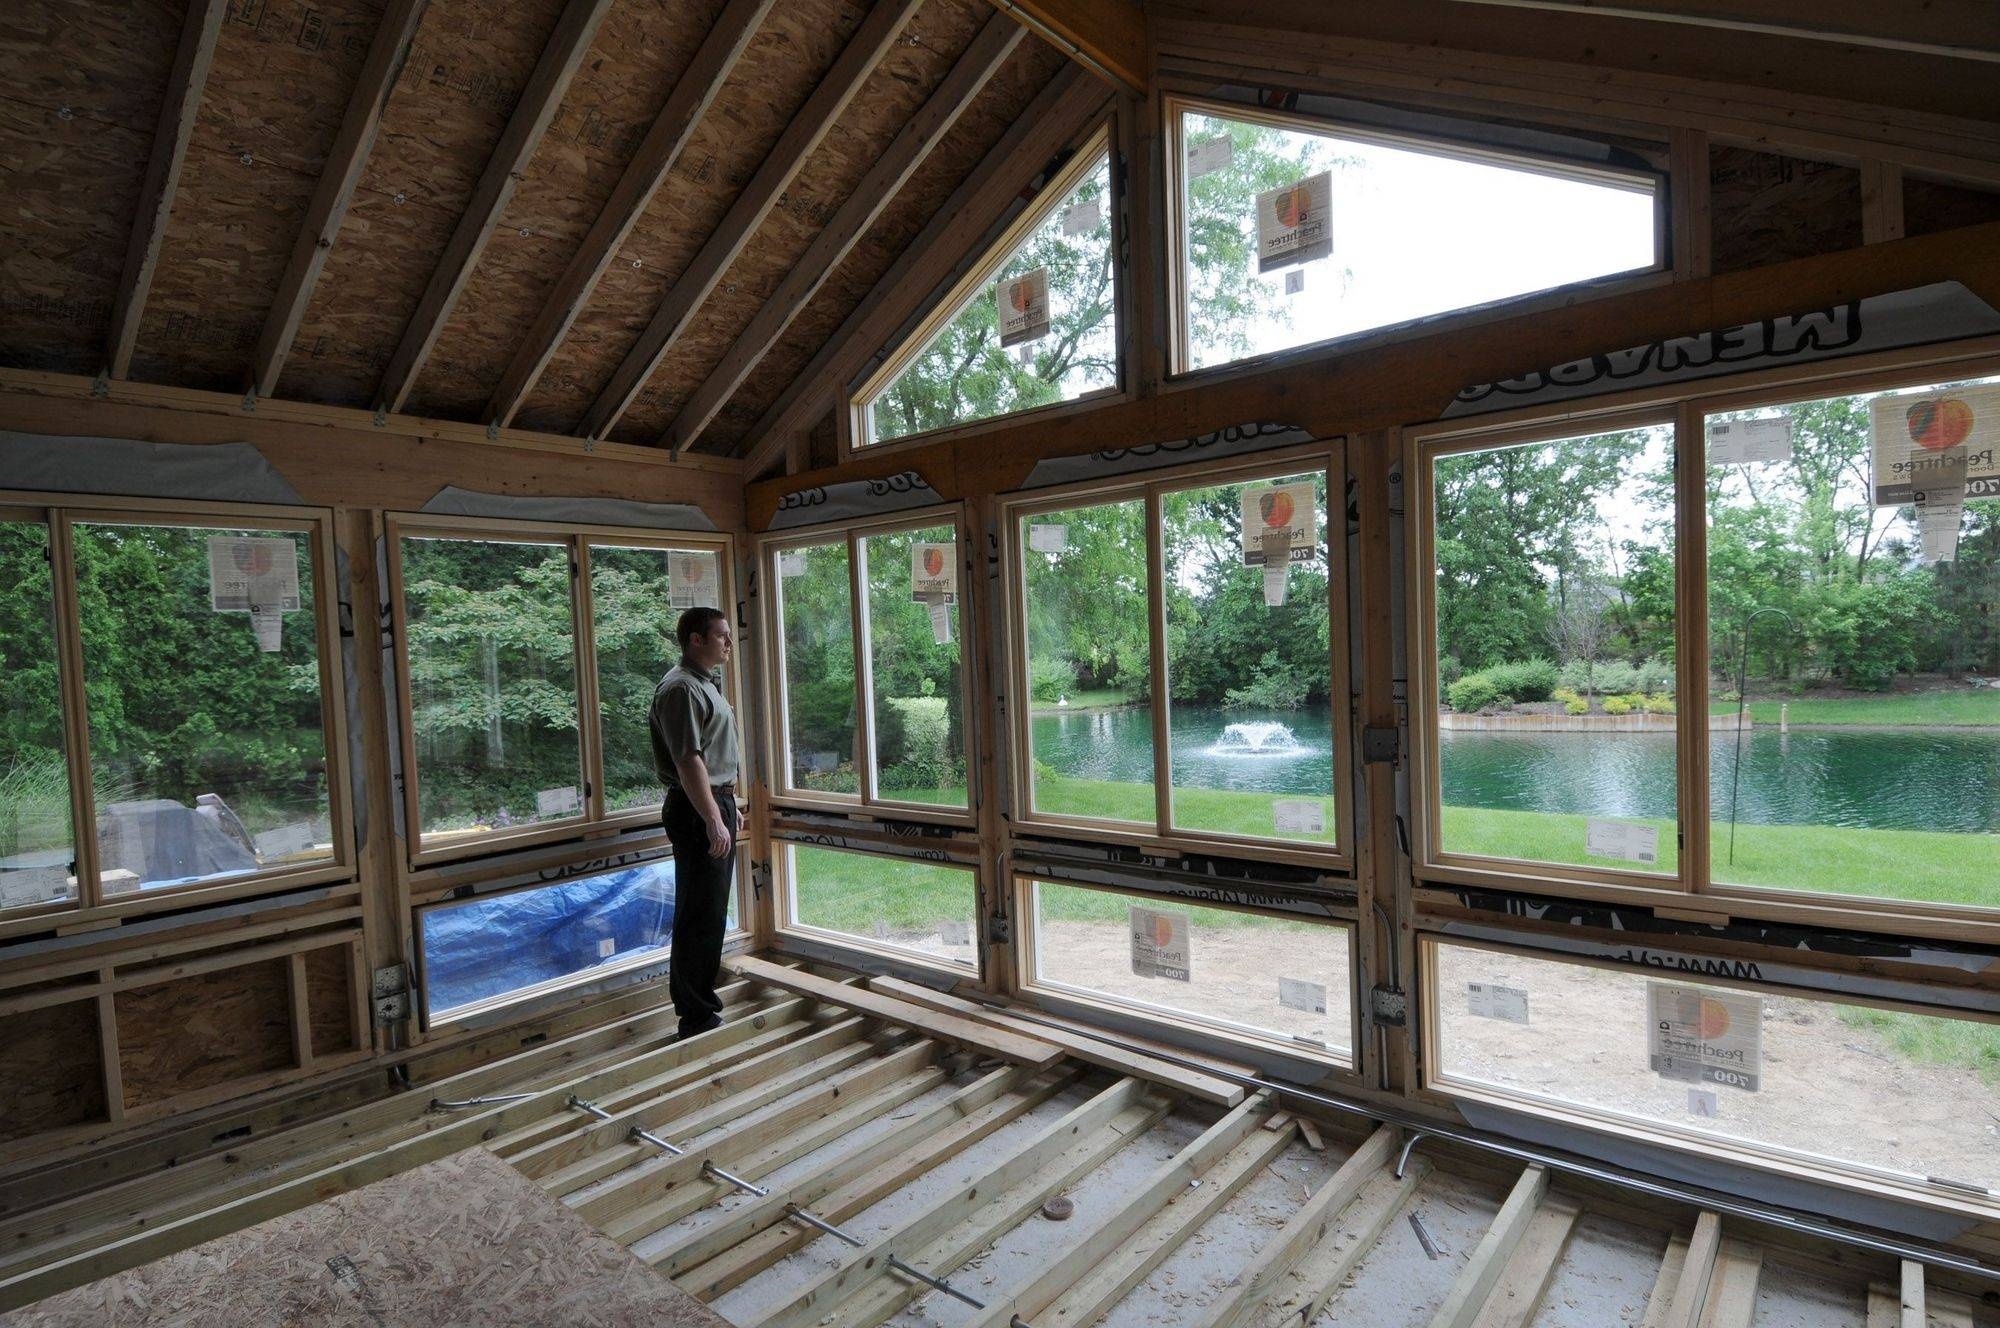 Brian Kinane Of TimberBuilt Rooms Looks Out Of The Sunroom His Company Is  Constructing At A